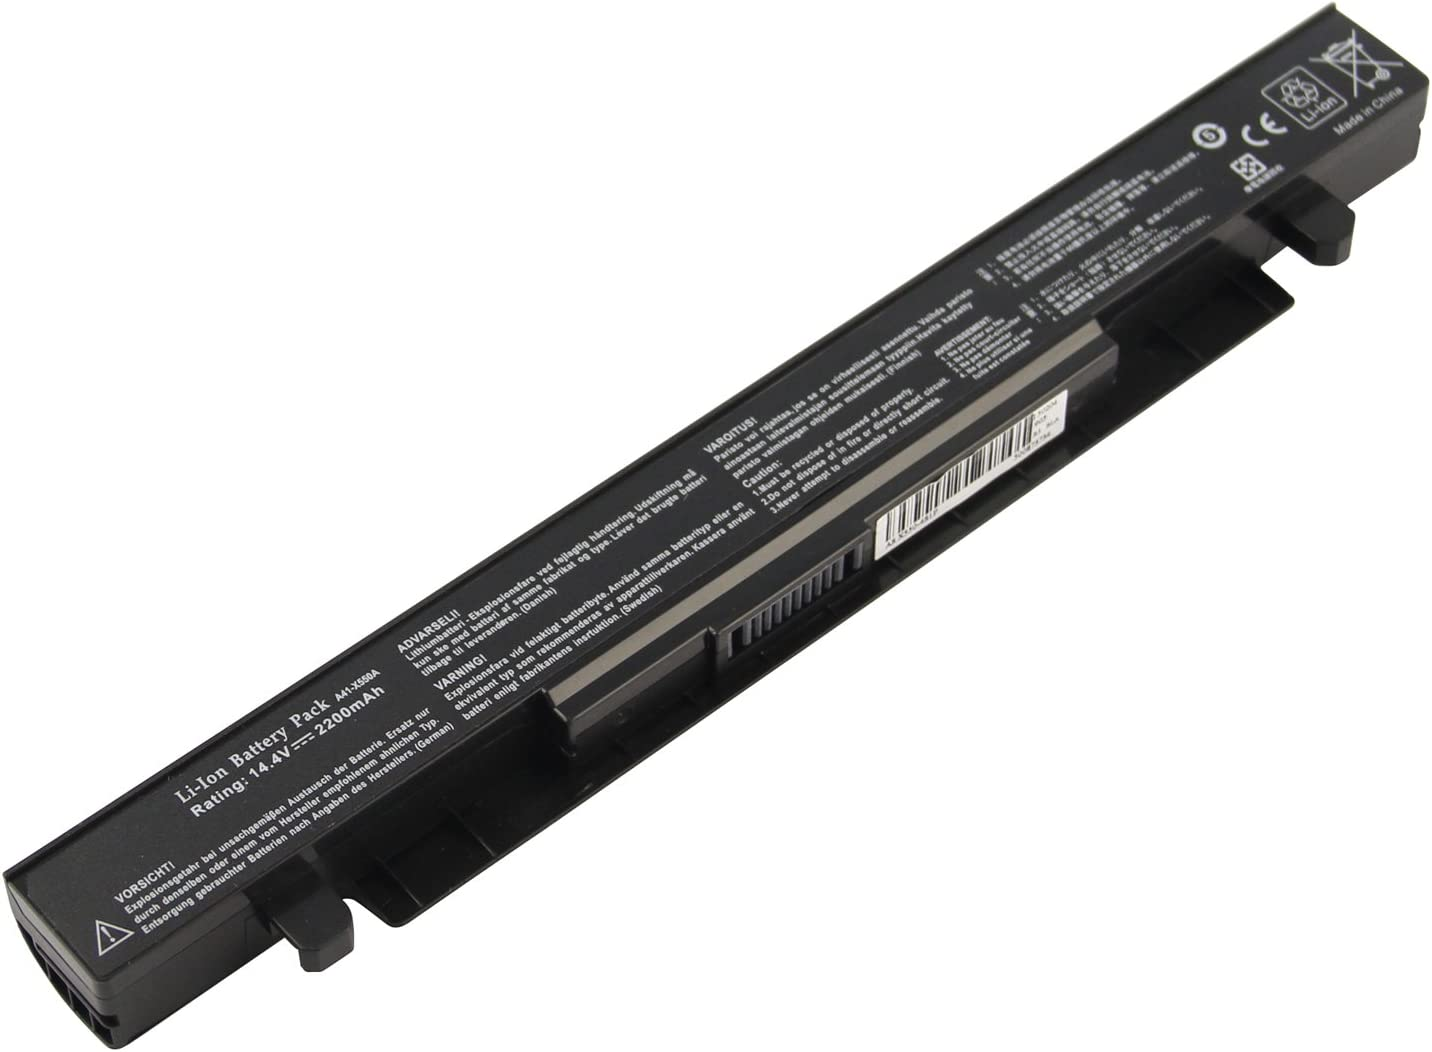 Futurebatt Laptop Notebook Battery for Asus X550 X550A X550B X550D X550L A41-X550 A550C,Asus A550 F550 F552 K450 K550 P450 P550 R409 R510 X452 X550 Series Batteries, 2200mAh/ 4 Cells